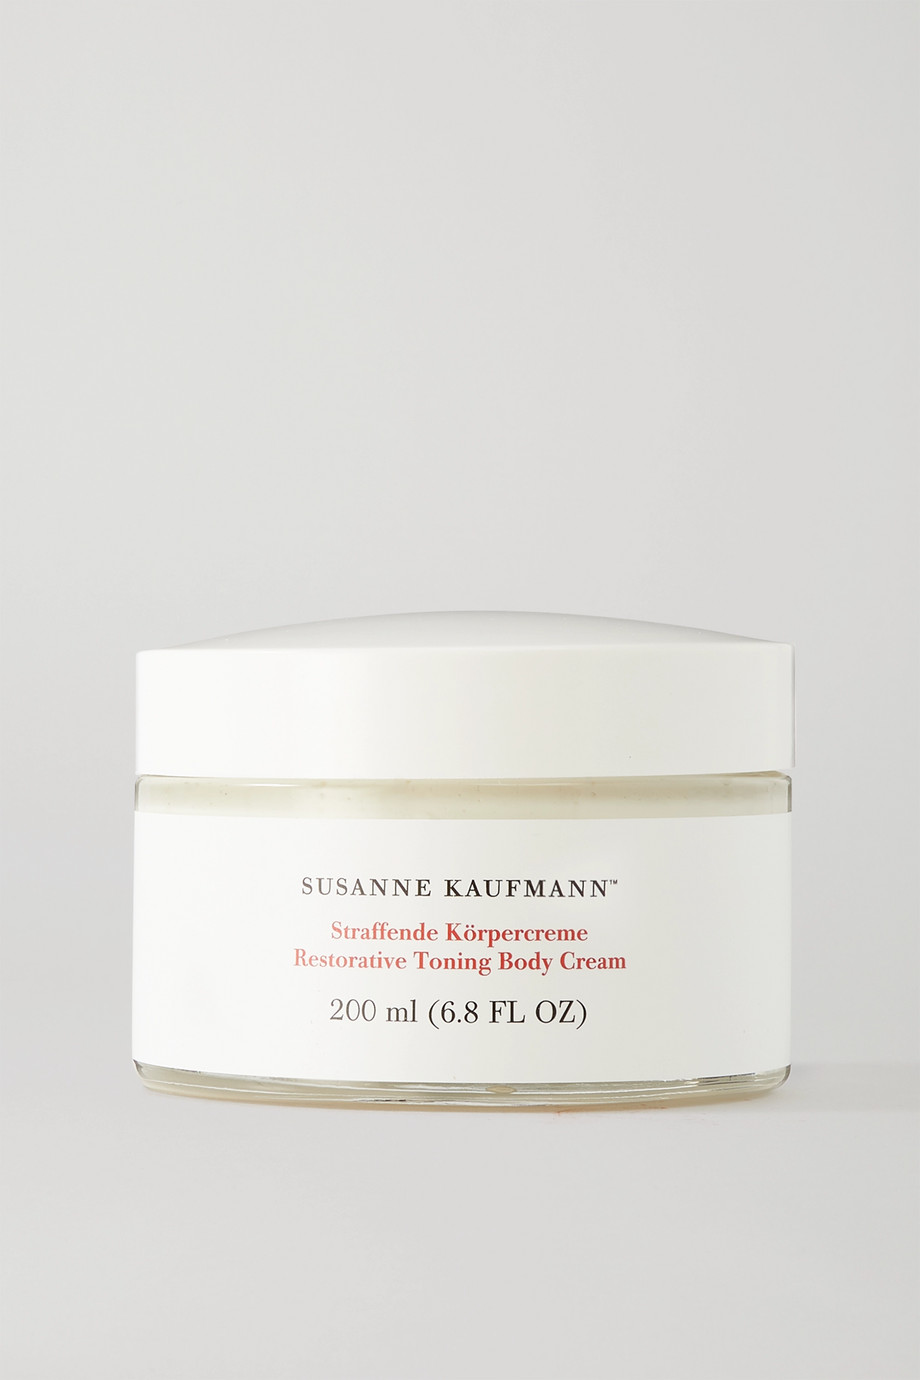 Susanne Kaufmann Restorative Toning Body Cream, 200ml